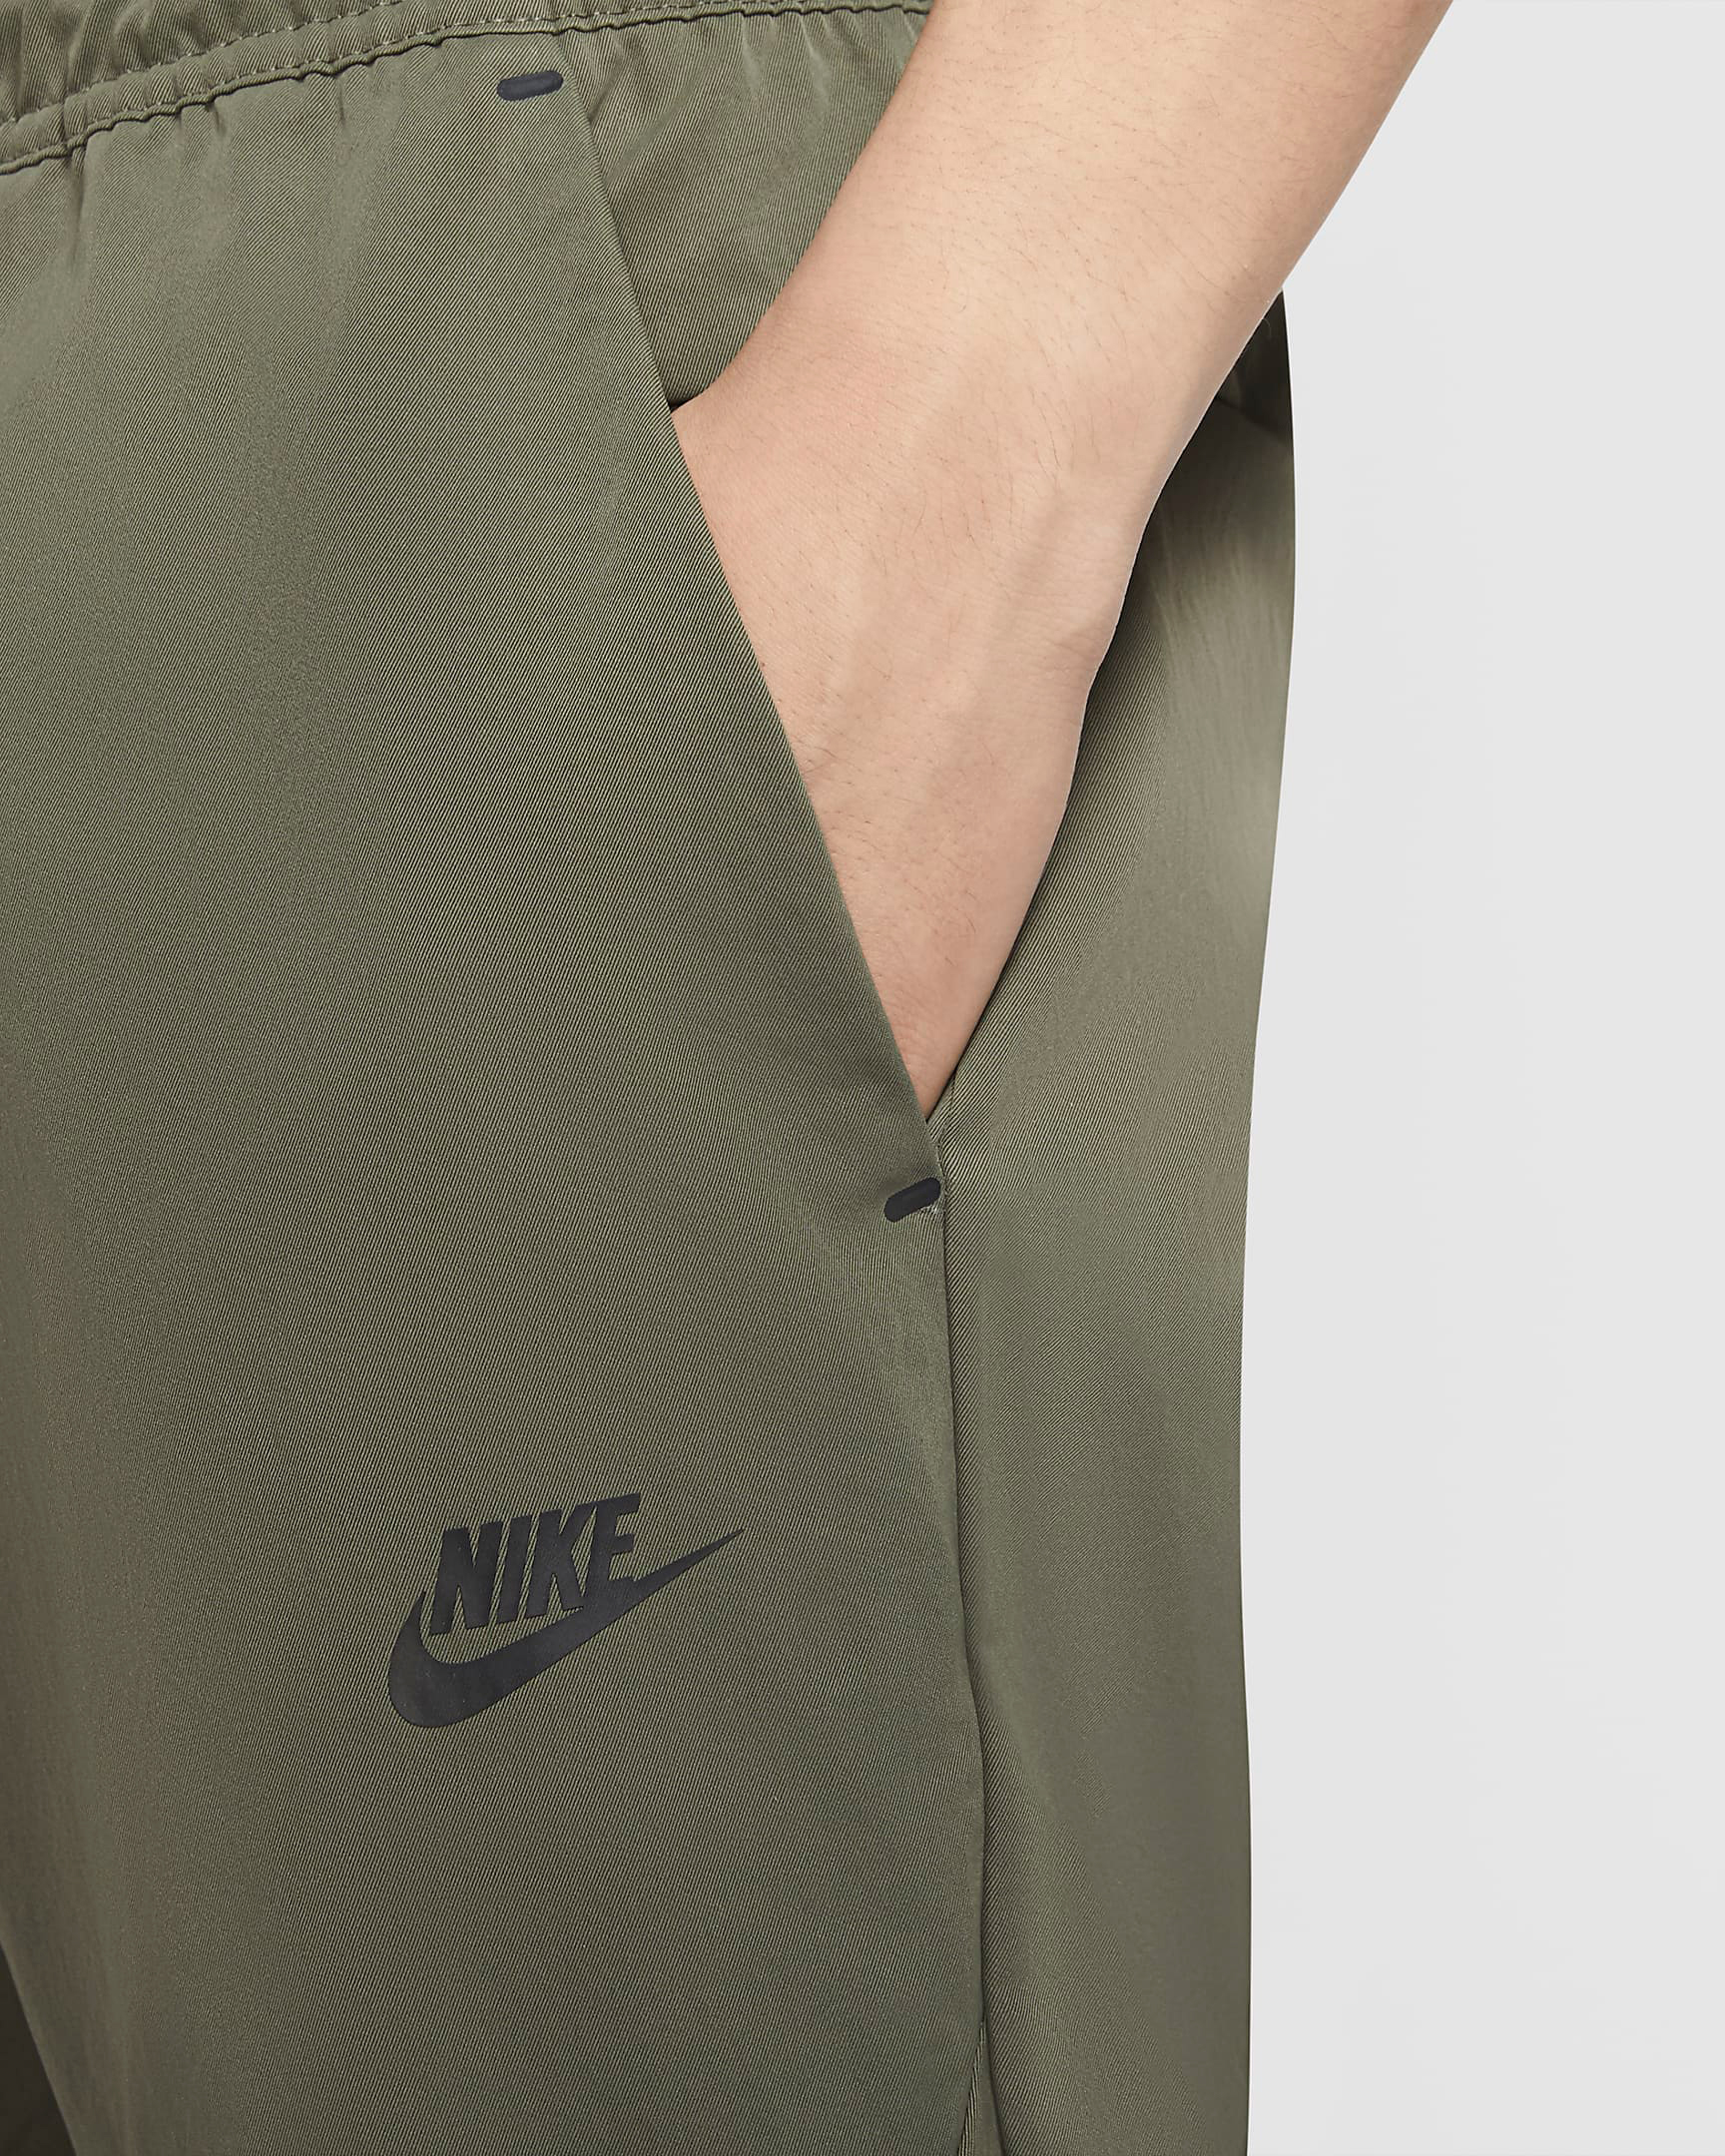 nike-air-tuned-max-celery-pants-2